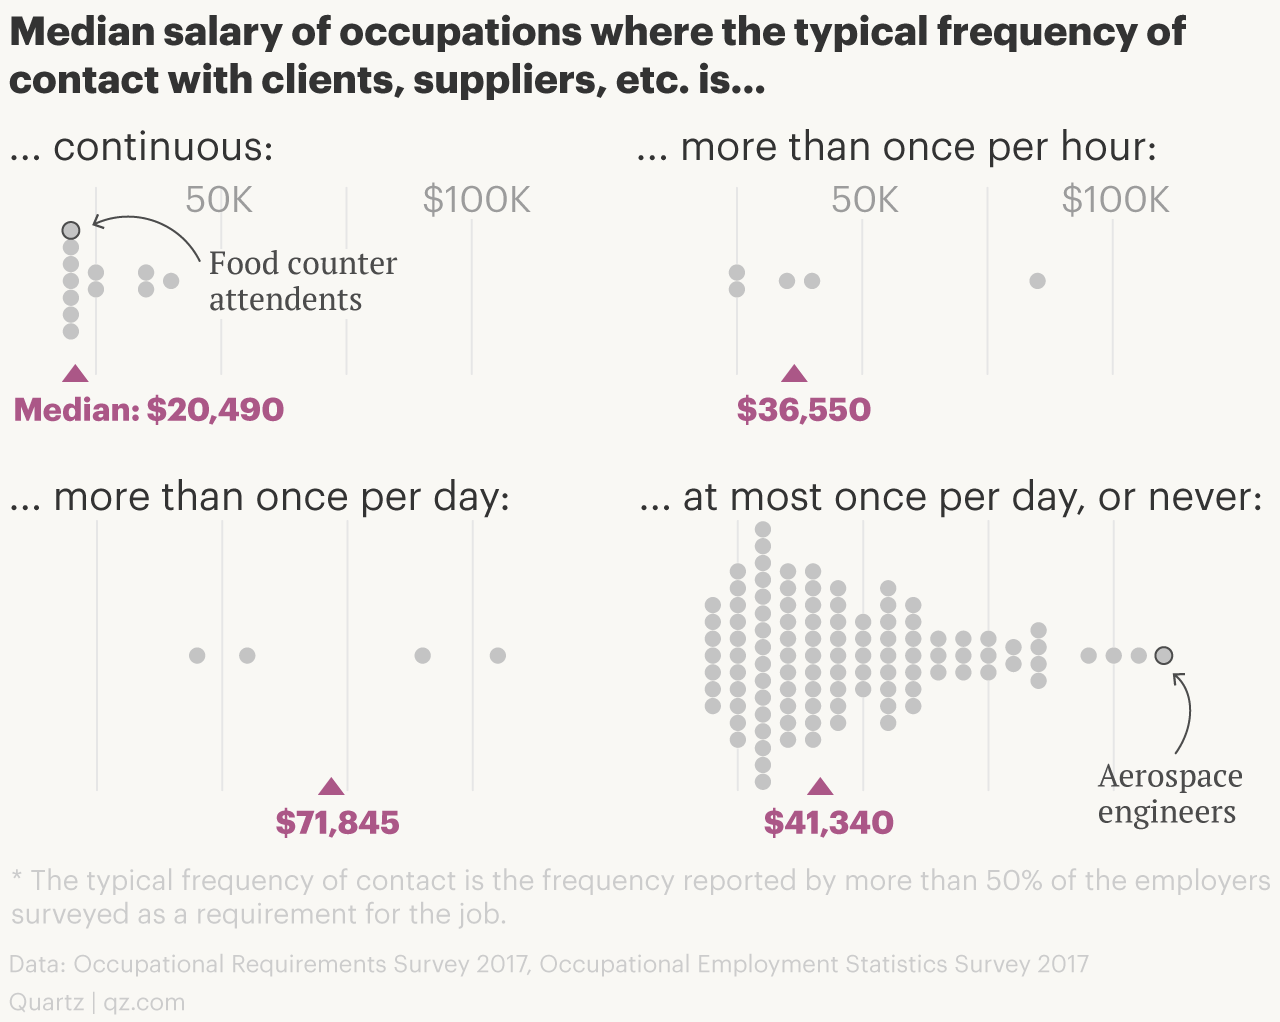 Frequency of communication with clients vs. salaries